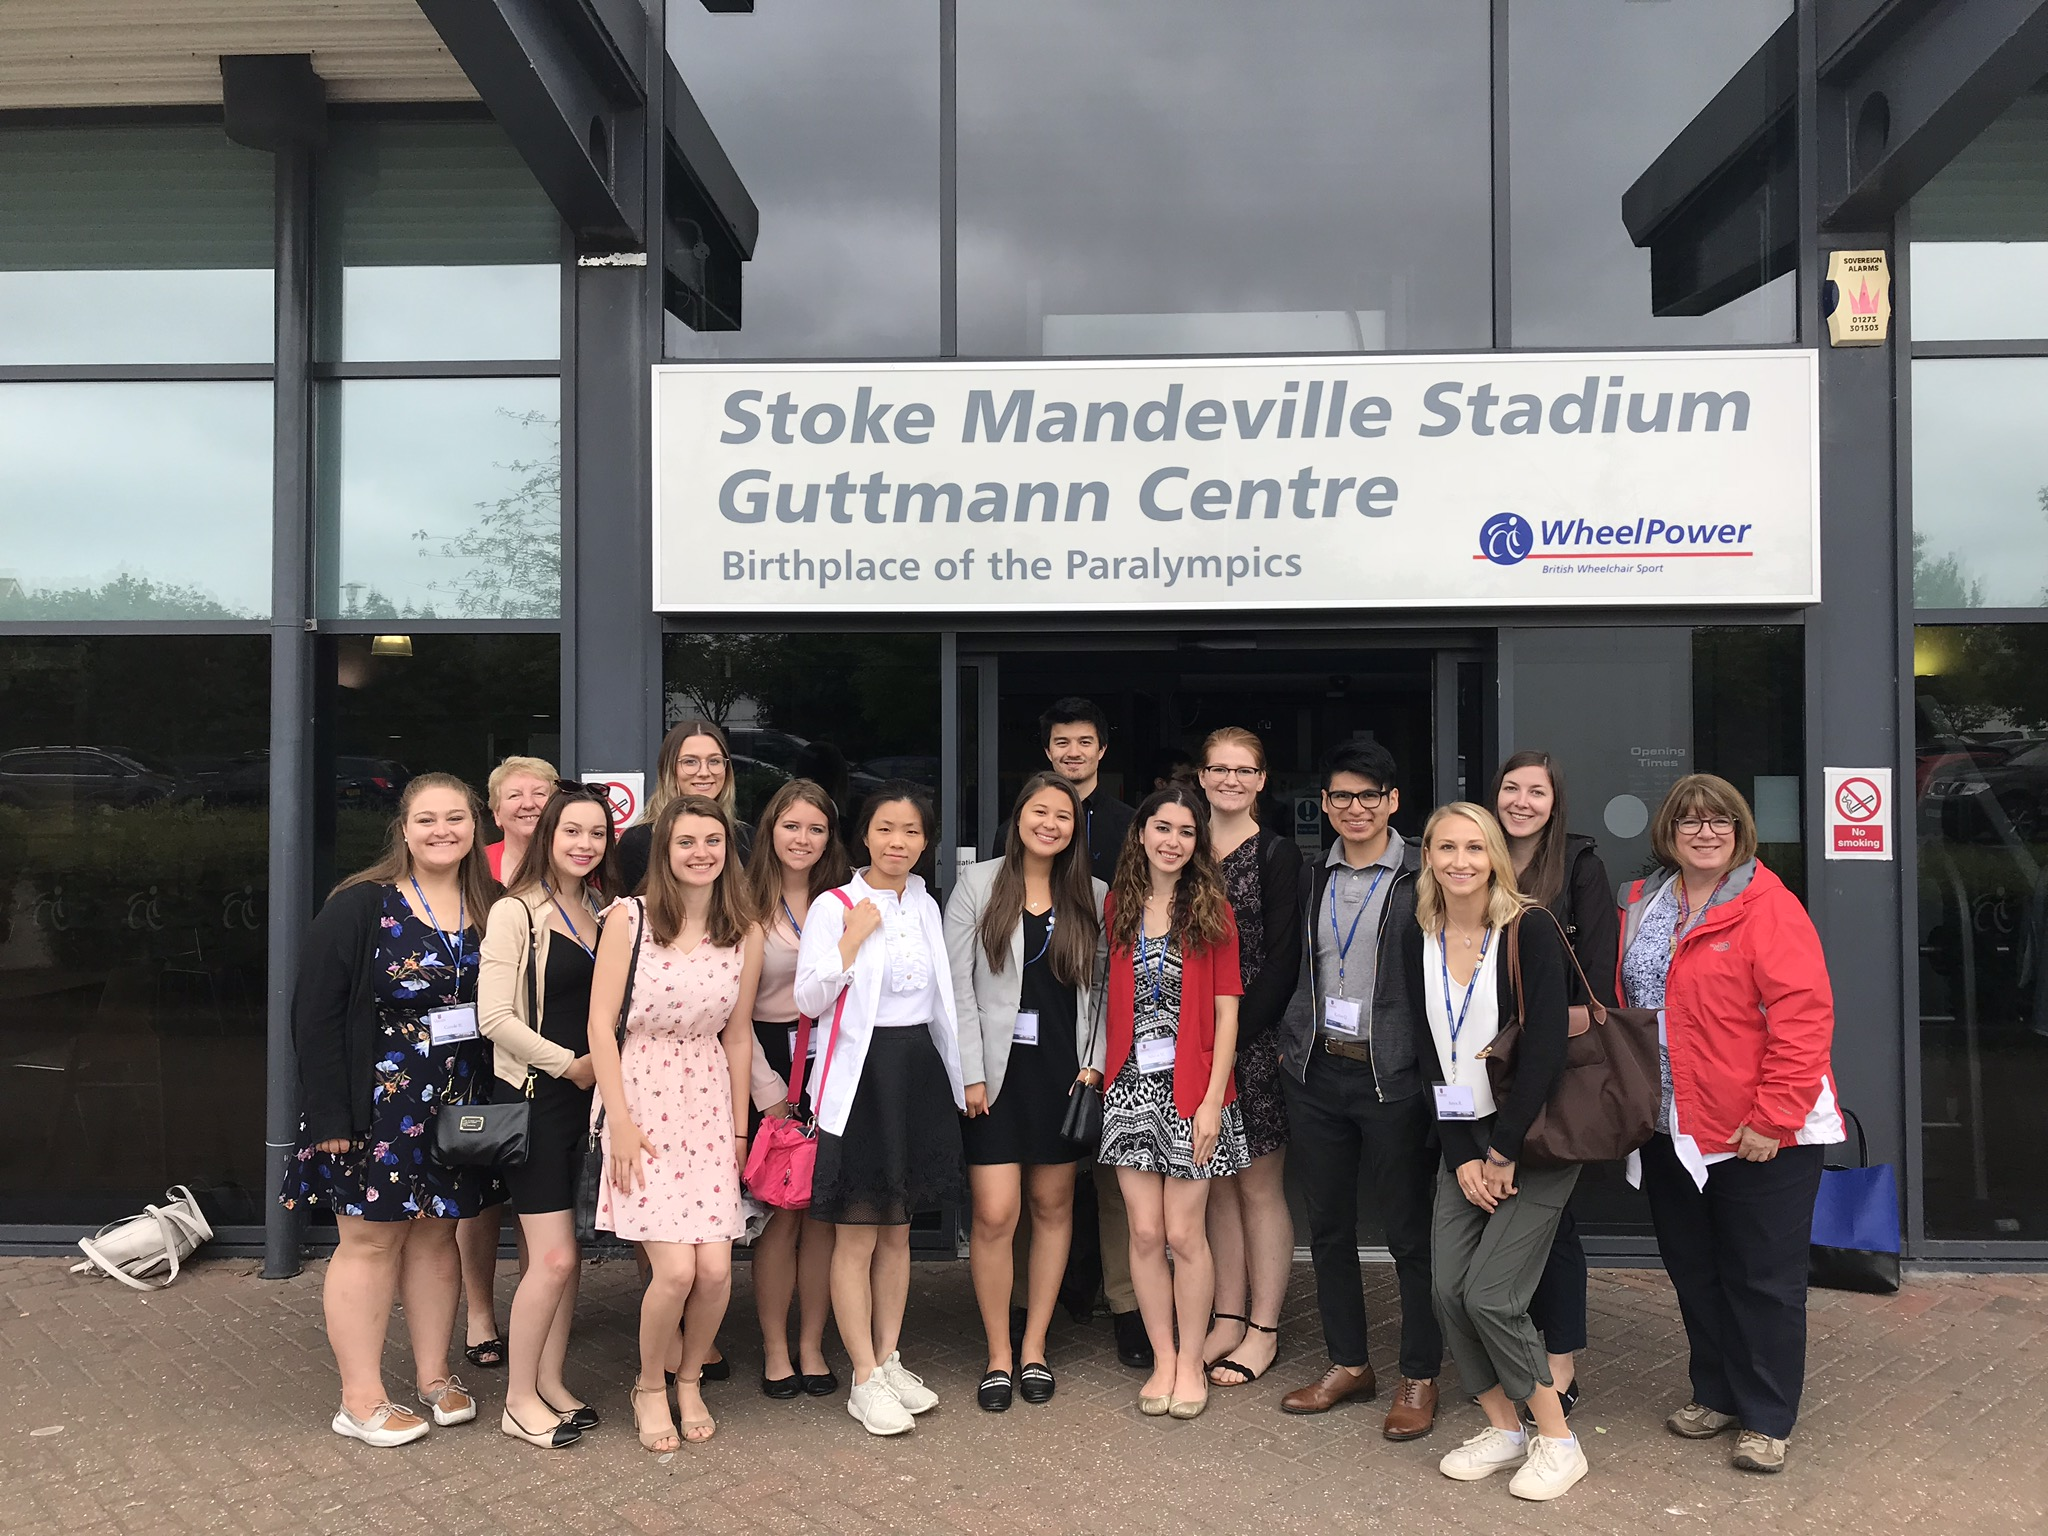 Group photo of the Canadian students visit outside of Stoke Mandeville Stadium